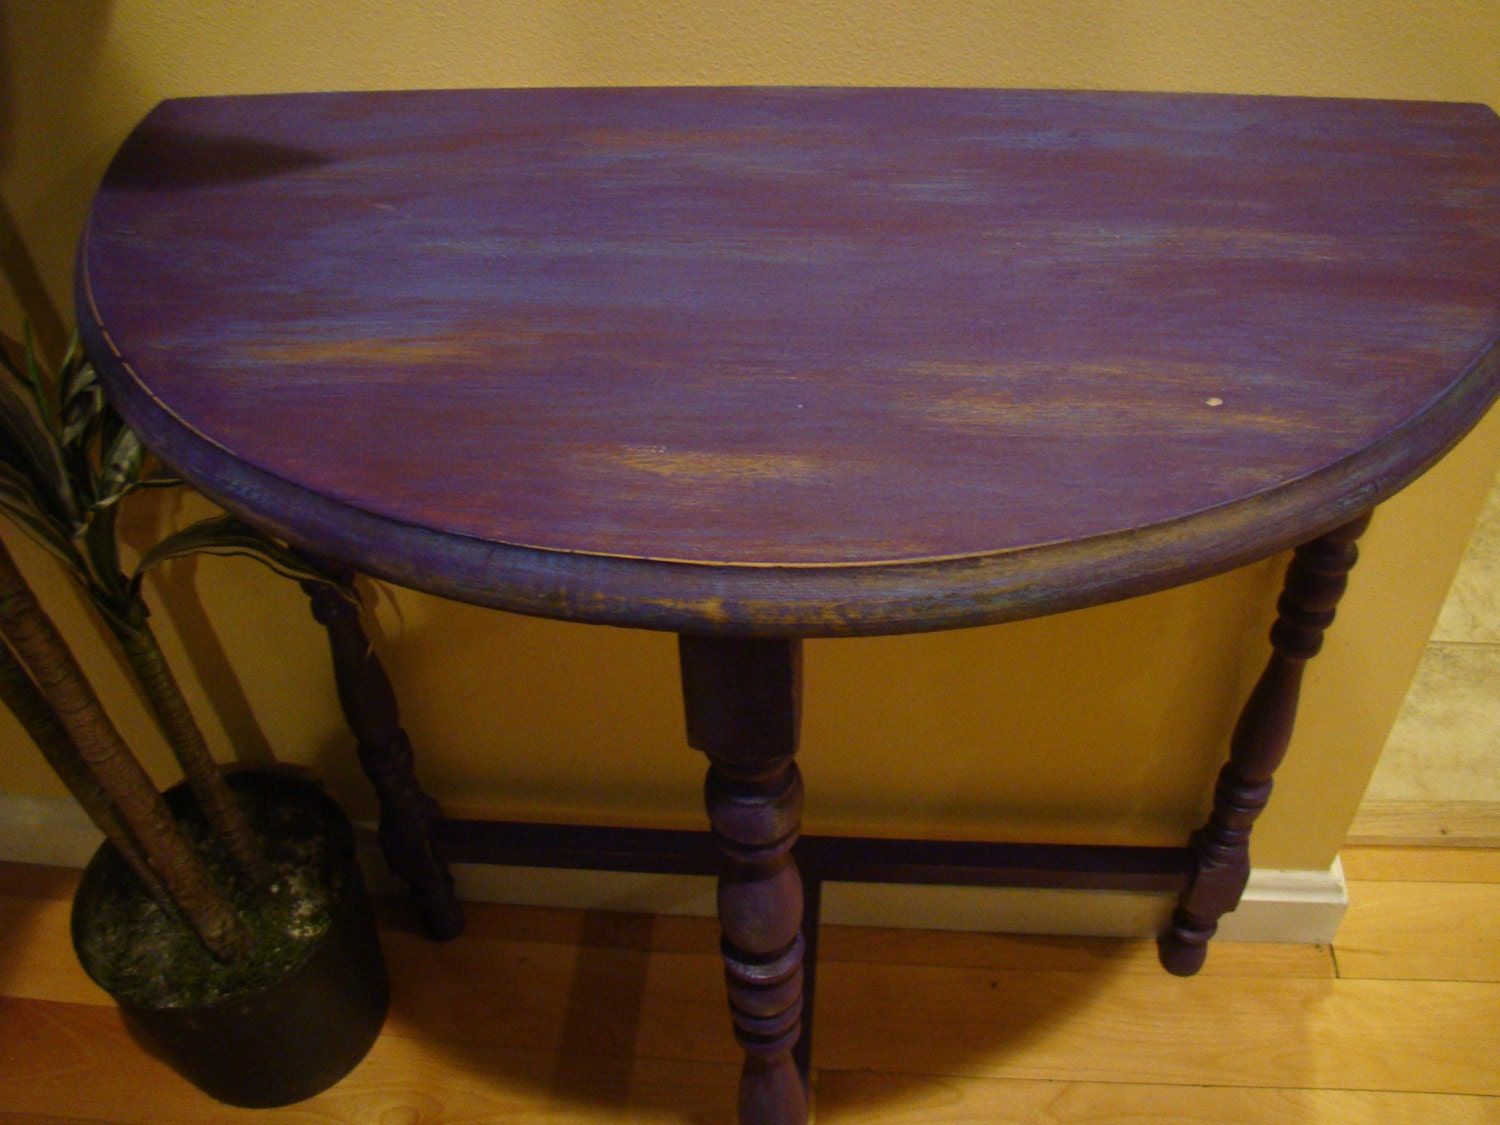 Antique Refinished Half Round Table Violet Purple And Teal